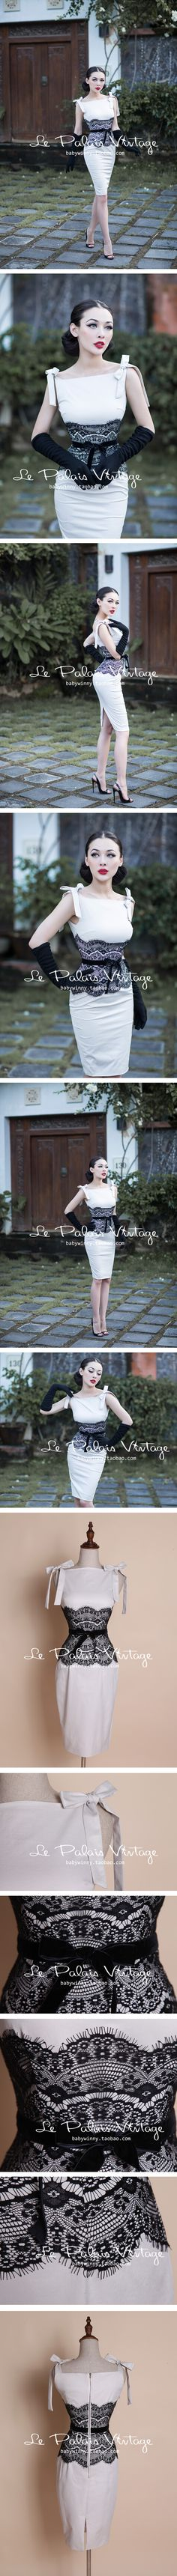 le palais vintage - Good contrast and interesting waist treatment. Not fond of the neckline. Look Vintage, Vintage Girls, Retro Vintage, Fashion Mode, 1940s Fashion, Vintage Fashion, Vestidos Vintage, Vintage Dresses, Vintage Outfits